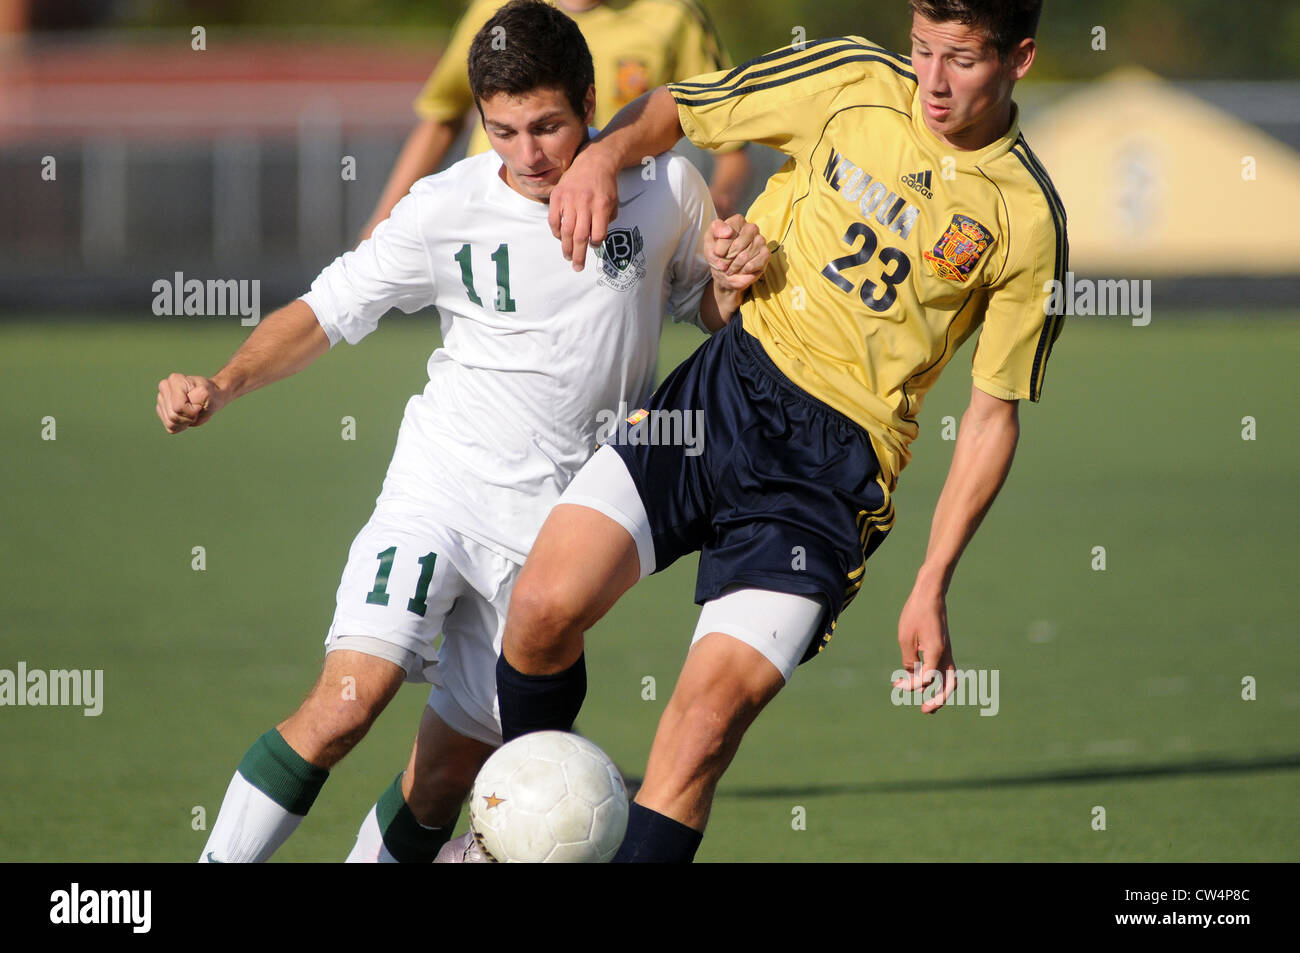 Soccer Players battle along the side line during a high school match. - Stock Image